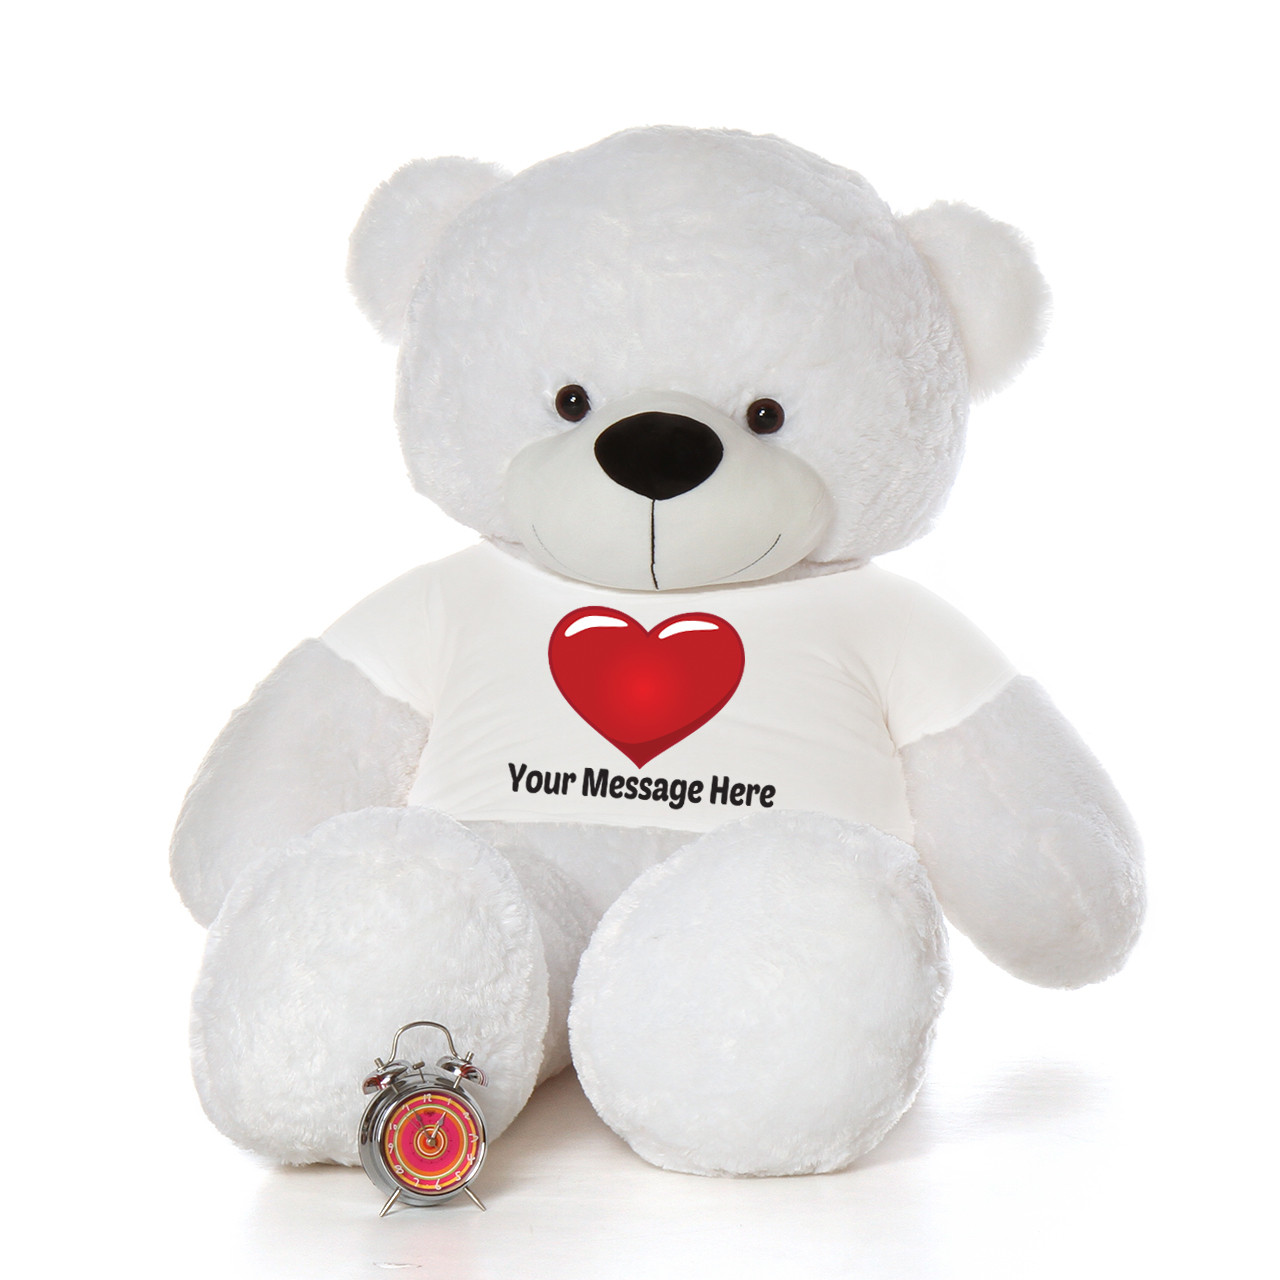 6 Foot Giant White Teddy Bear with Personalized Red Heart T-shirt